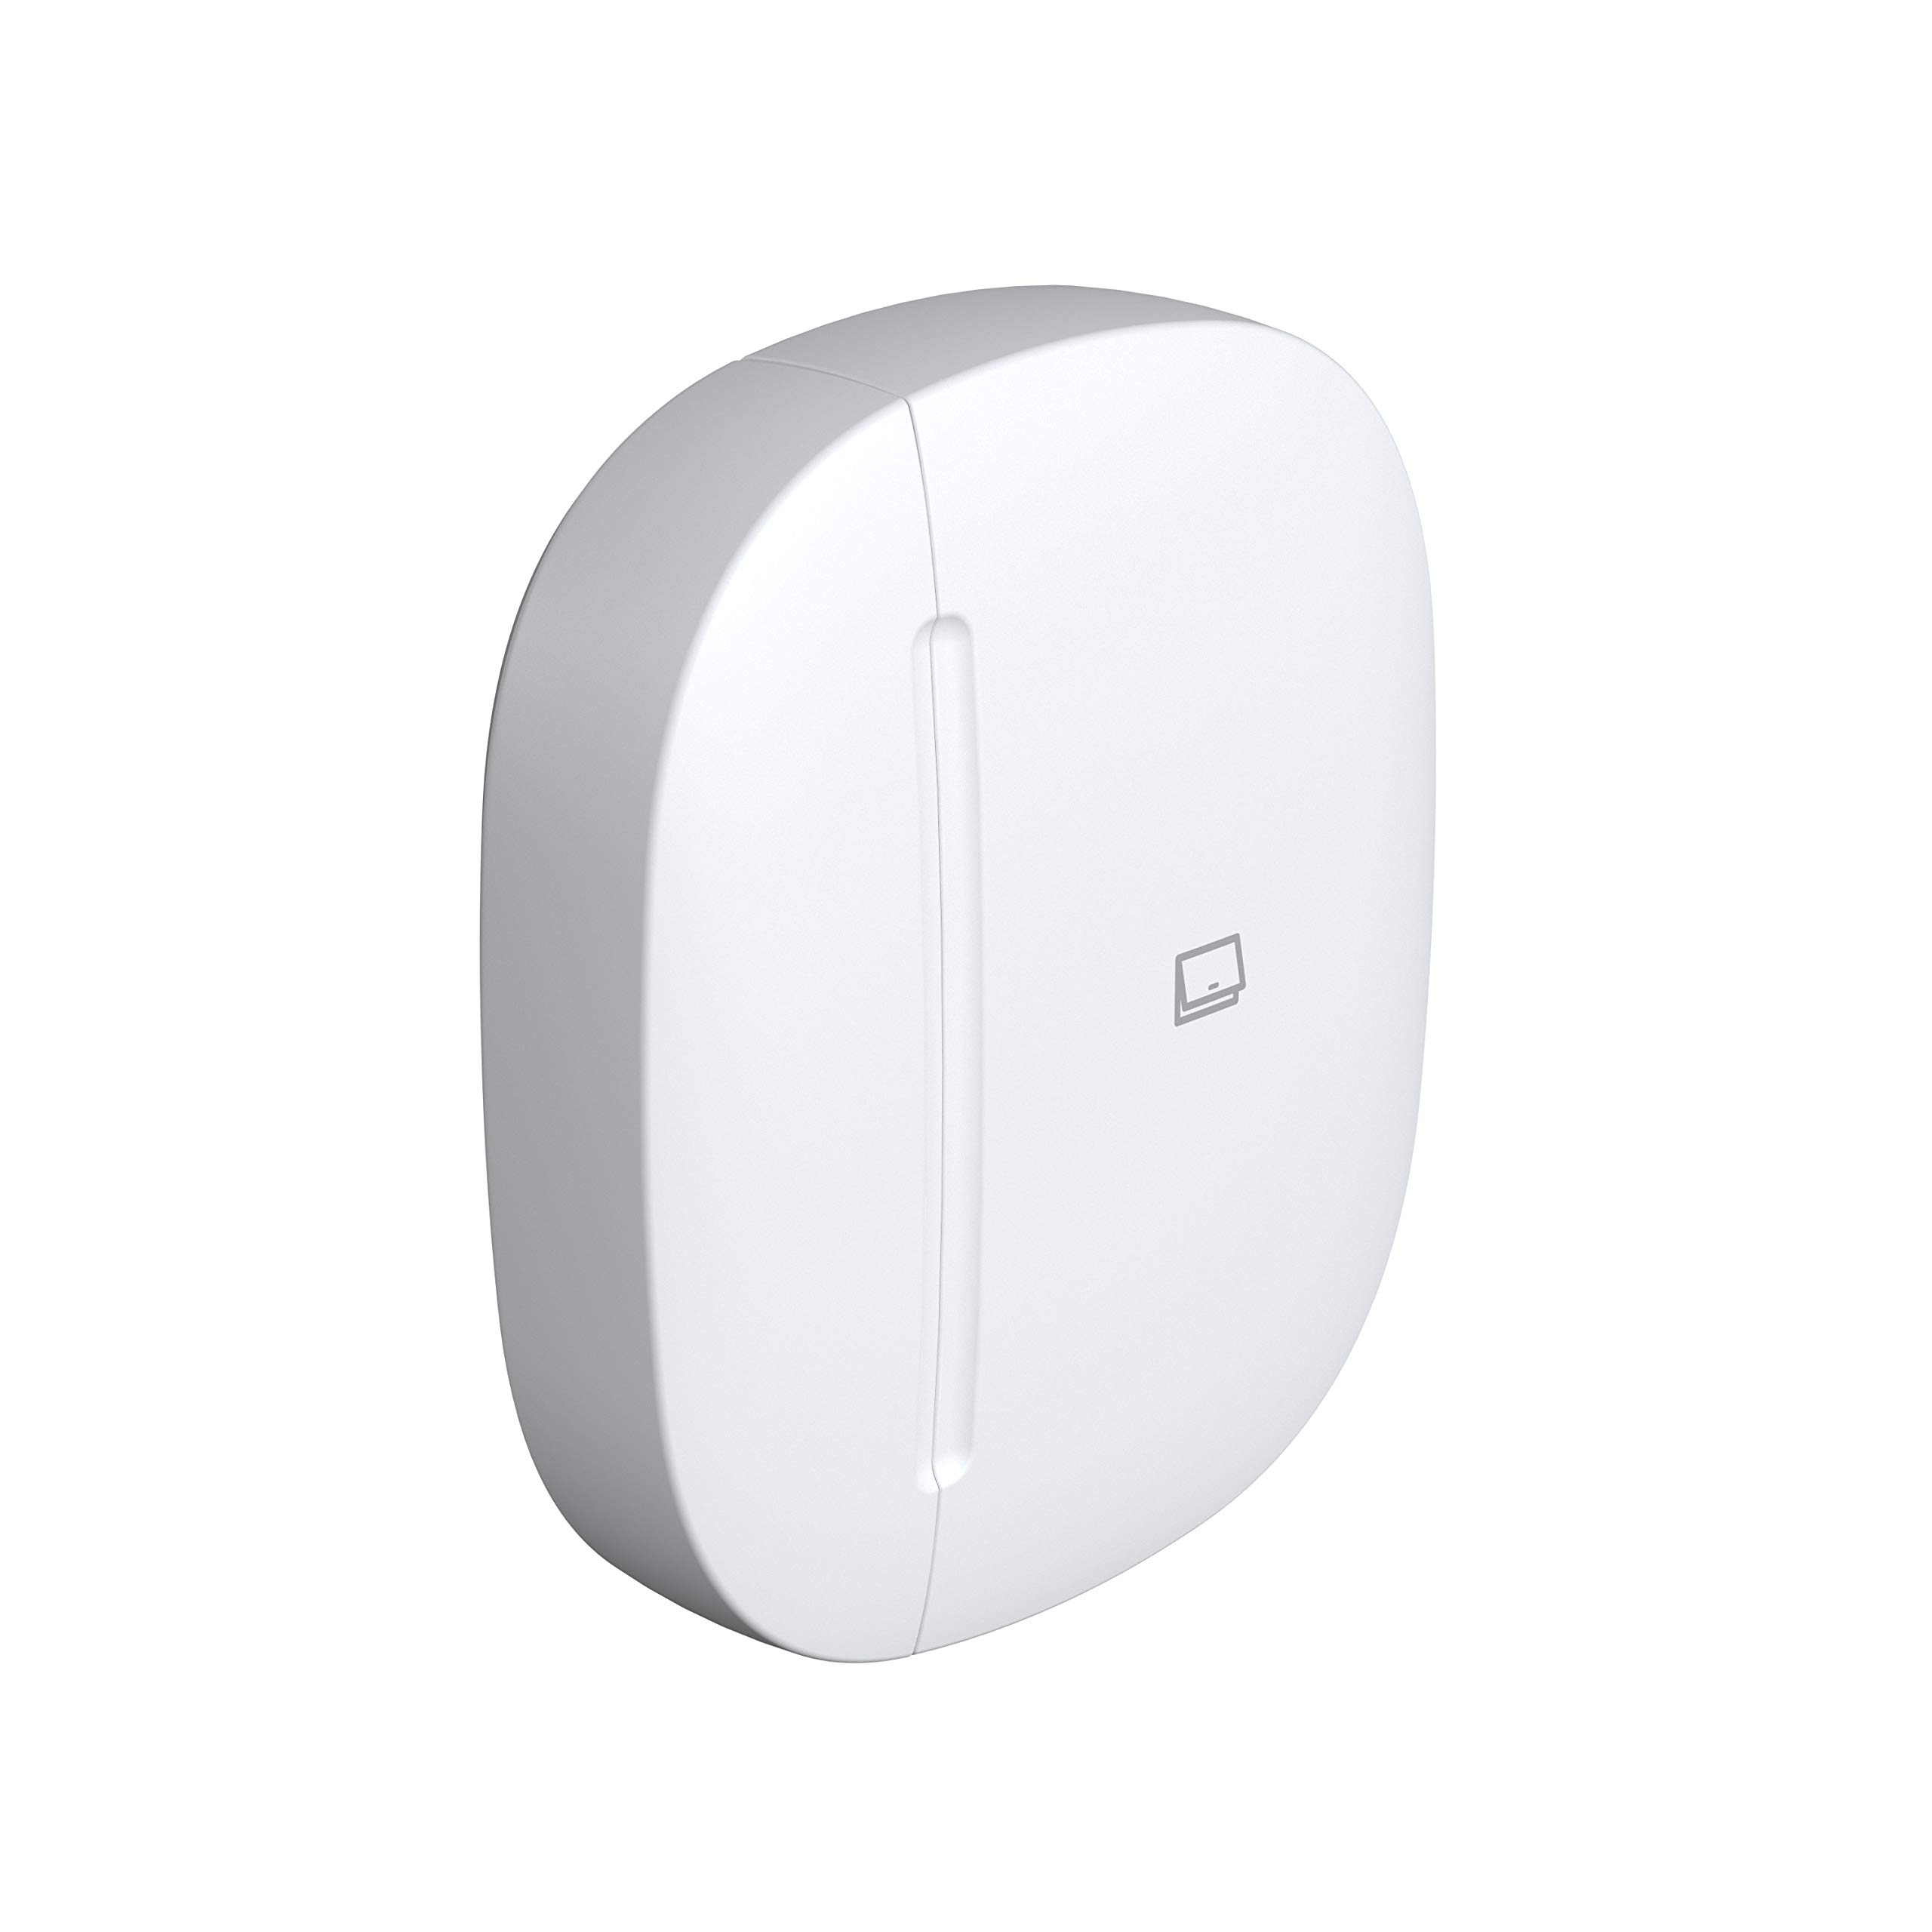 Samsung SmartThings GP-U999SJVLAAA Door & Window Multipurpose Sensor, White